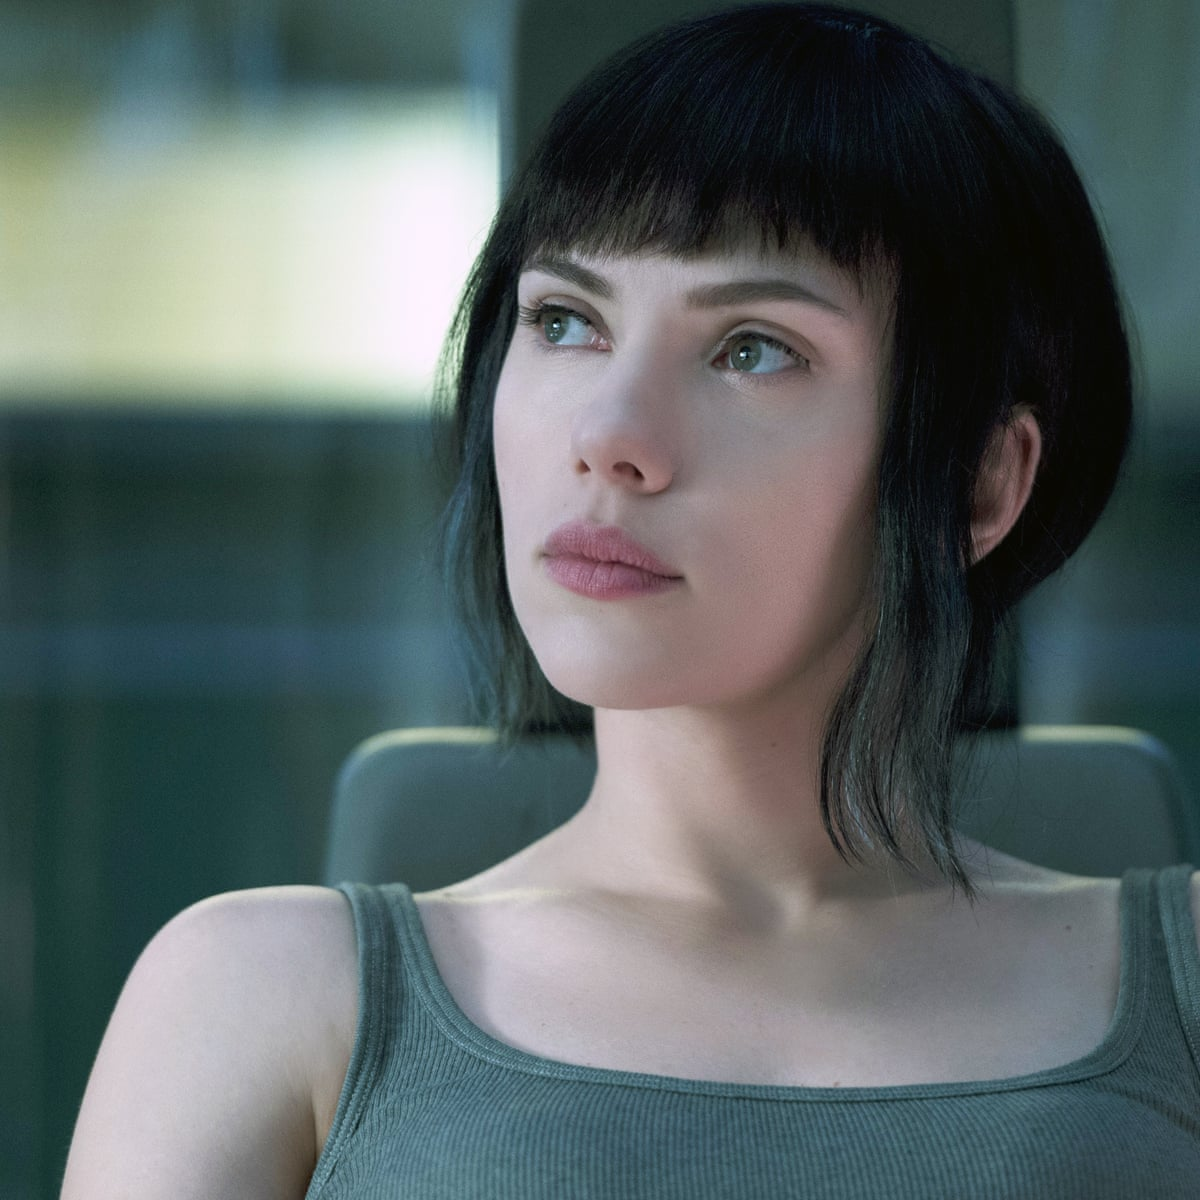 Scarlett Johansson Could Ideally Play Any Person But Our World Is Far From Ideal Scarlett Johansson The Guardian